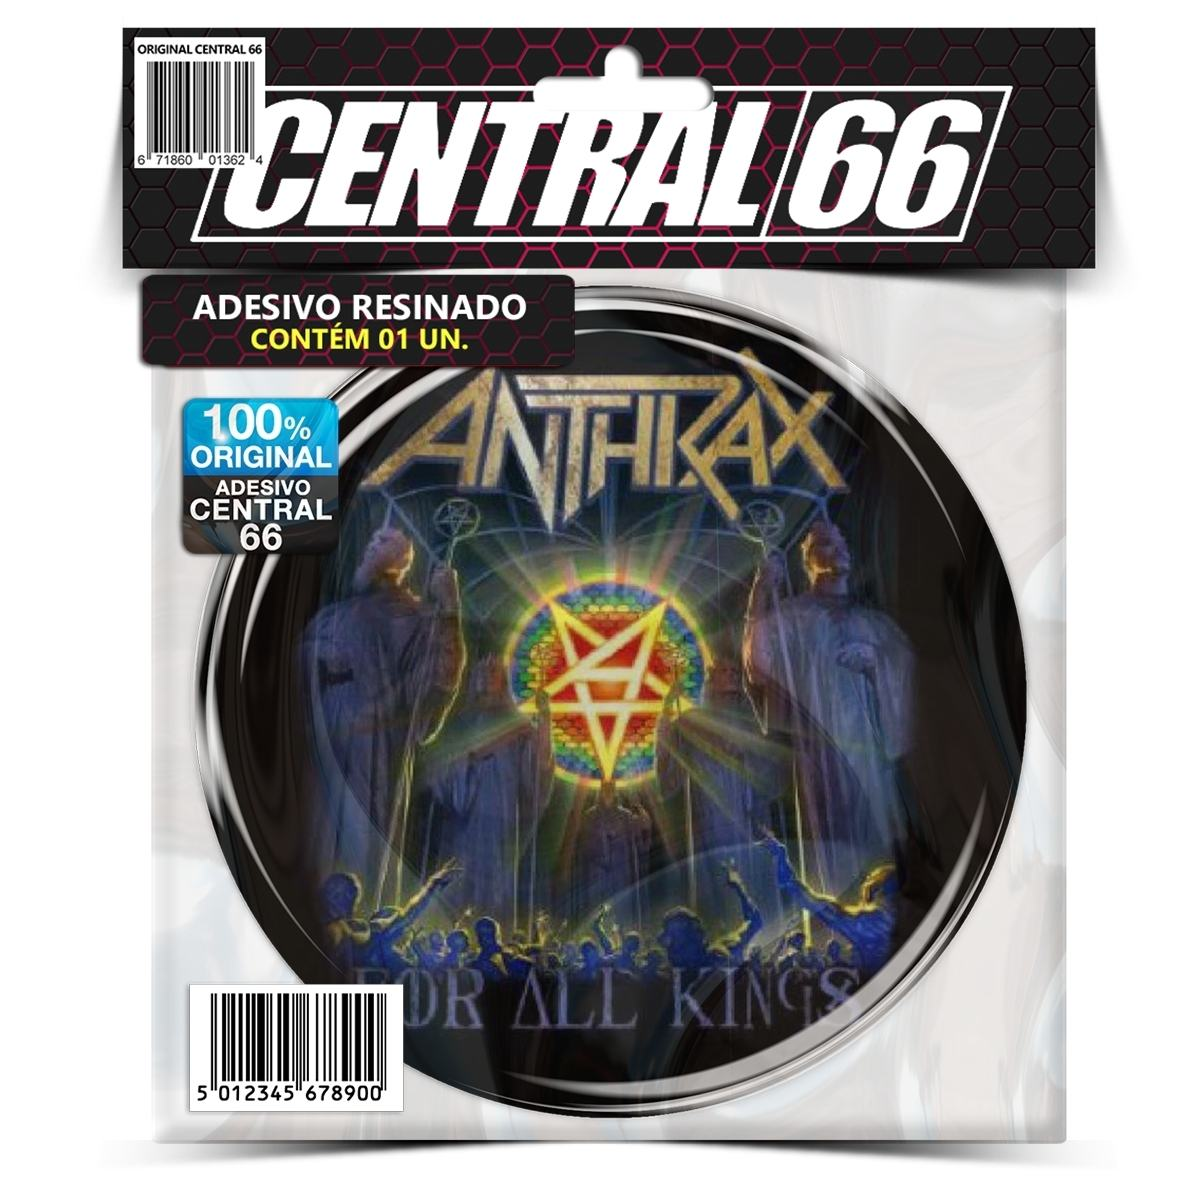 Adesivo Redondo Anthrax For all Kings – Central 66